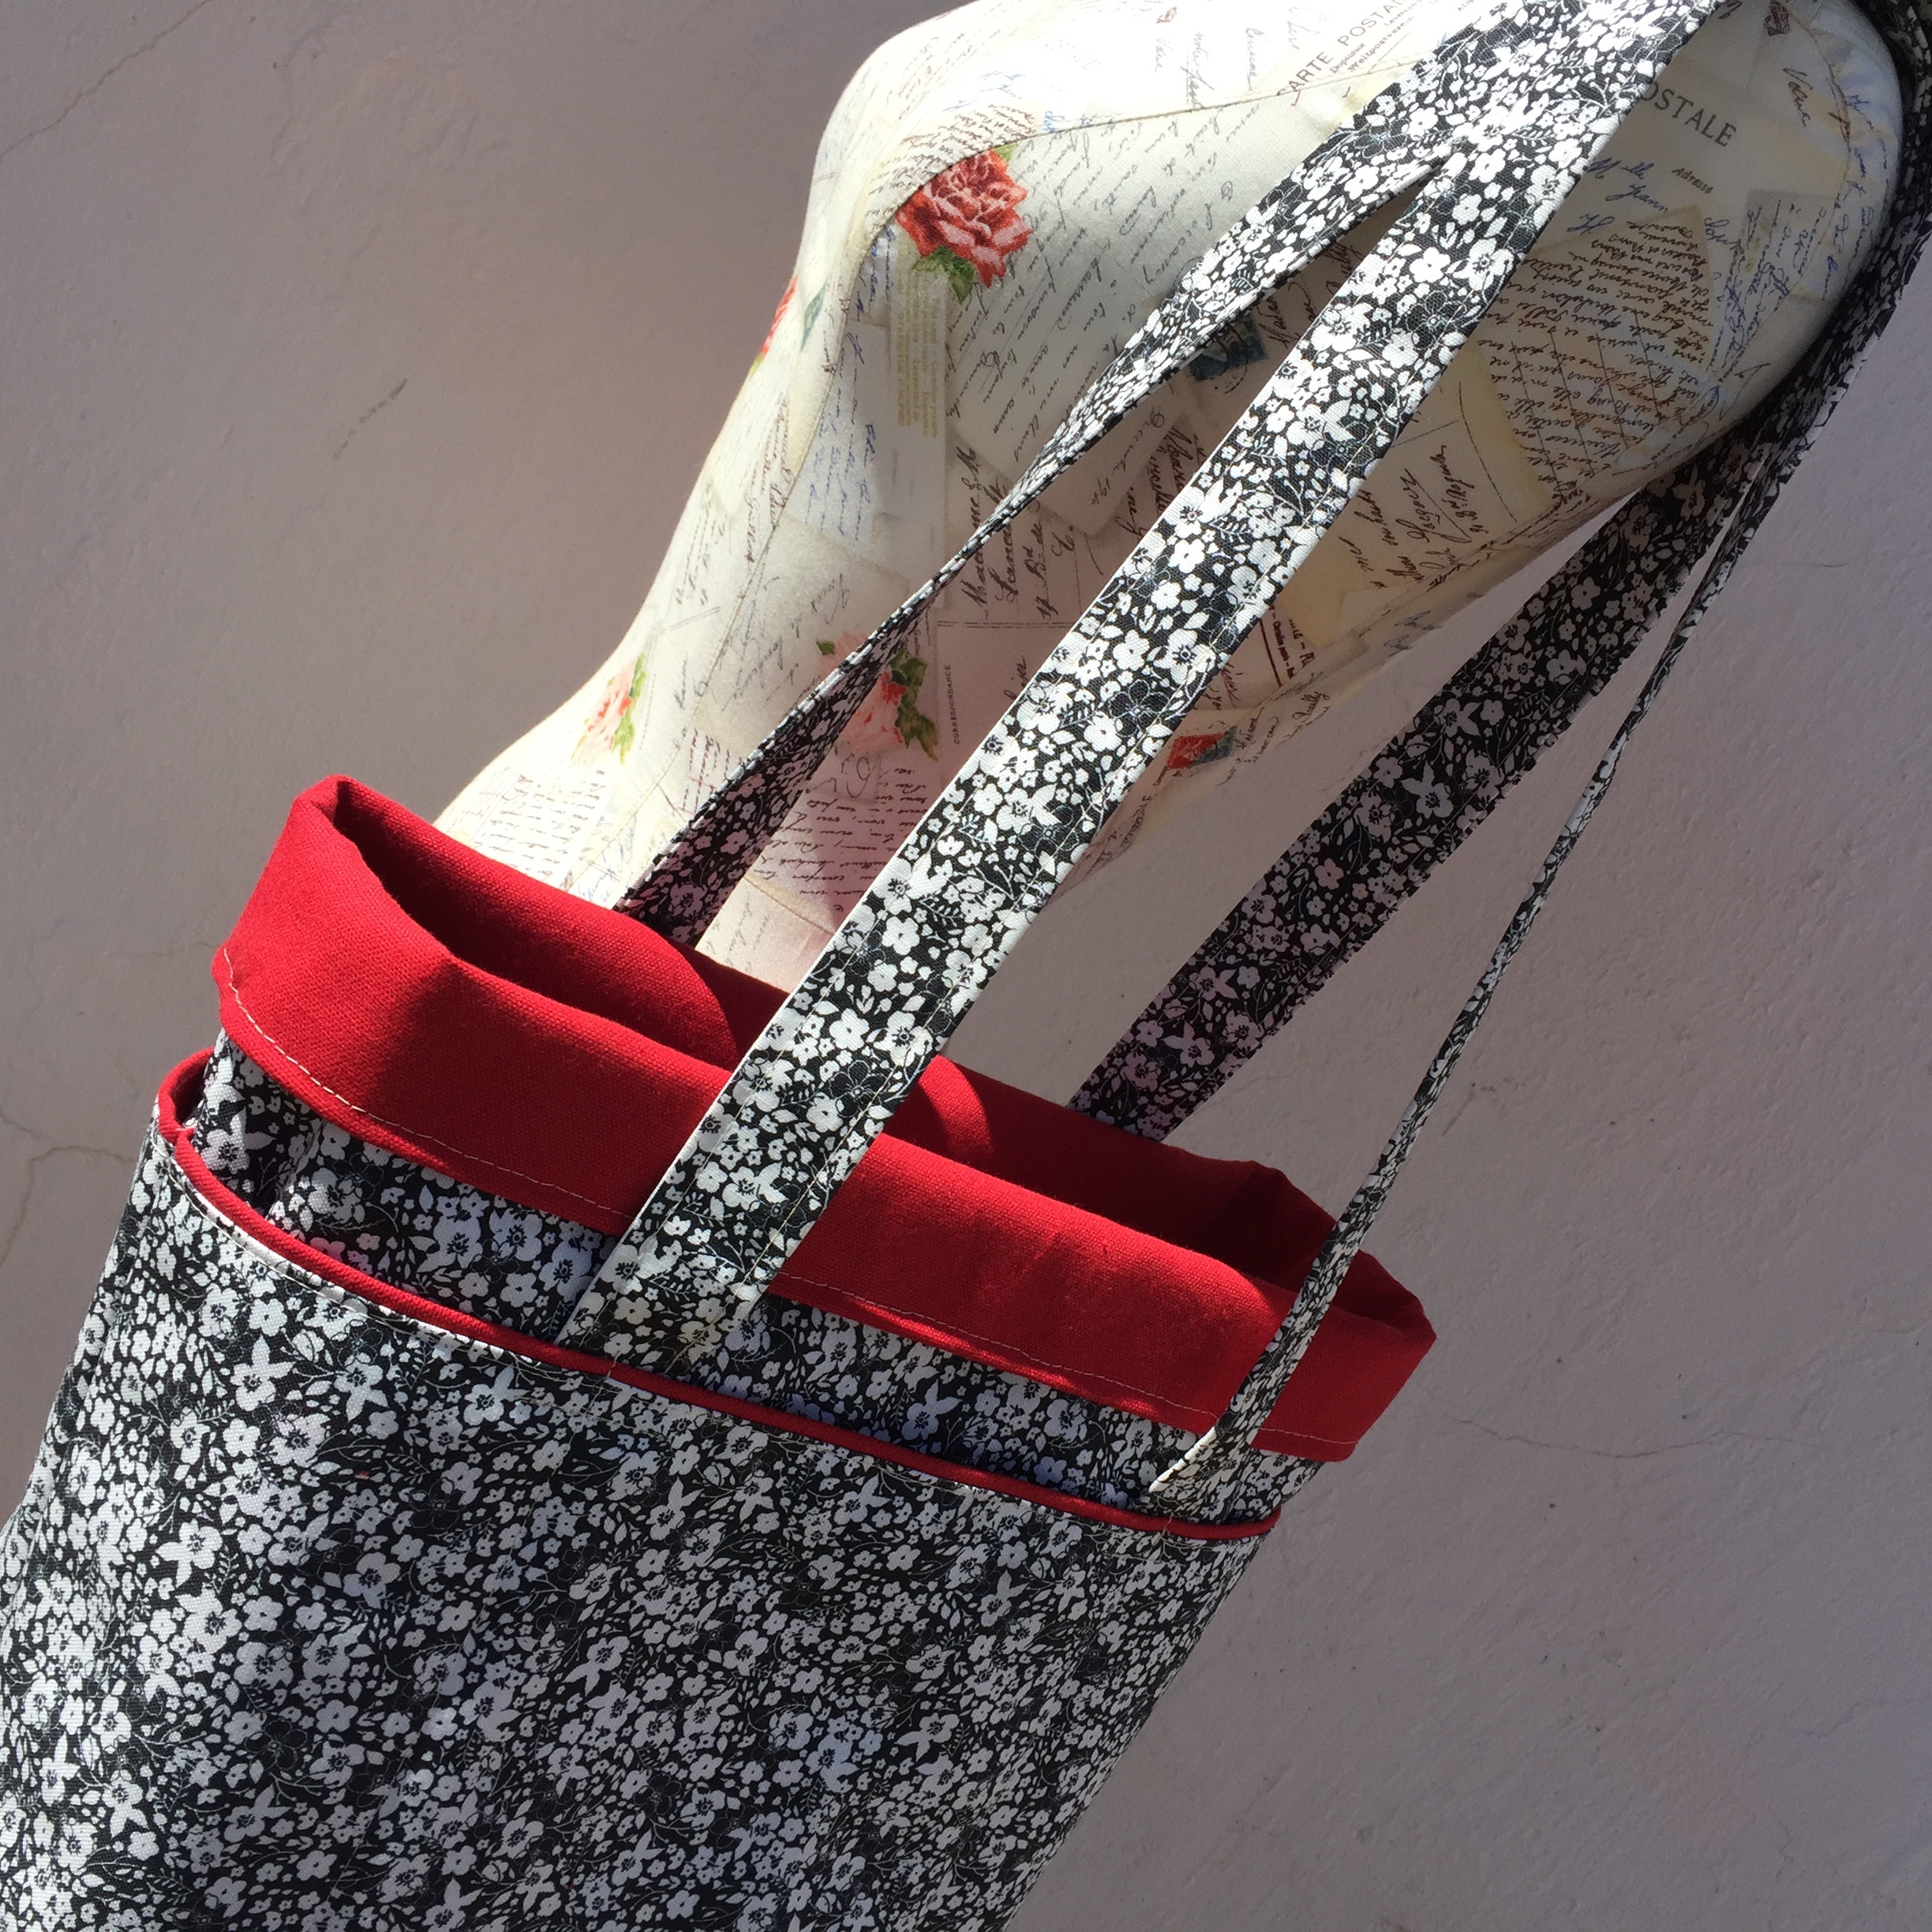 How to sew a six pocket tote bag